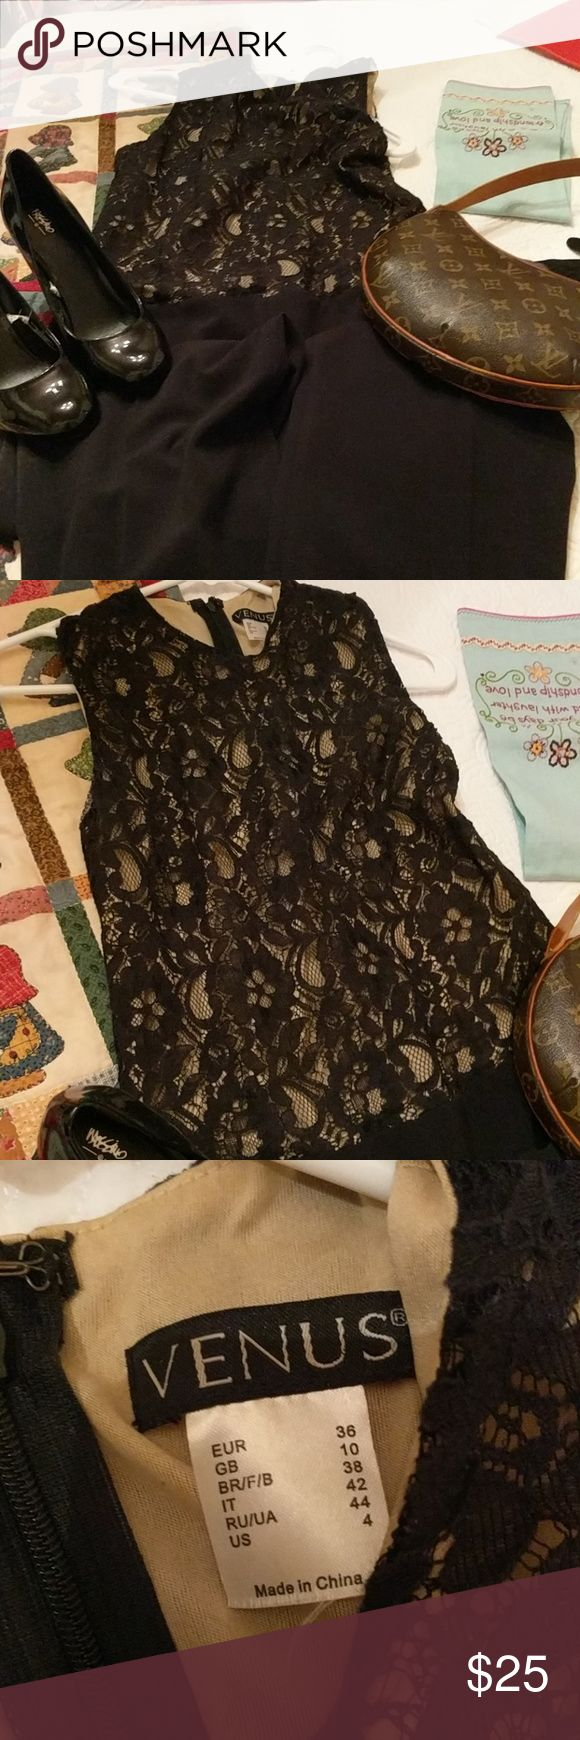 Size 4 Venus Black lace jumpsuit Venus Black lace jumpsuit with cream underlay. It will fit someone 5'2 and under. There is hem you can let out if your taller. Venus Other